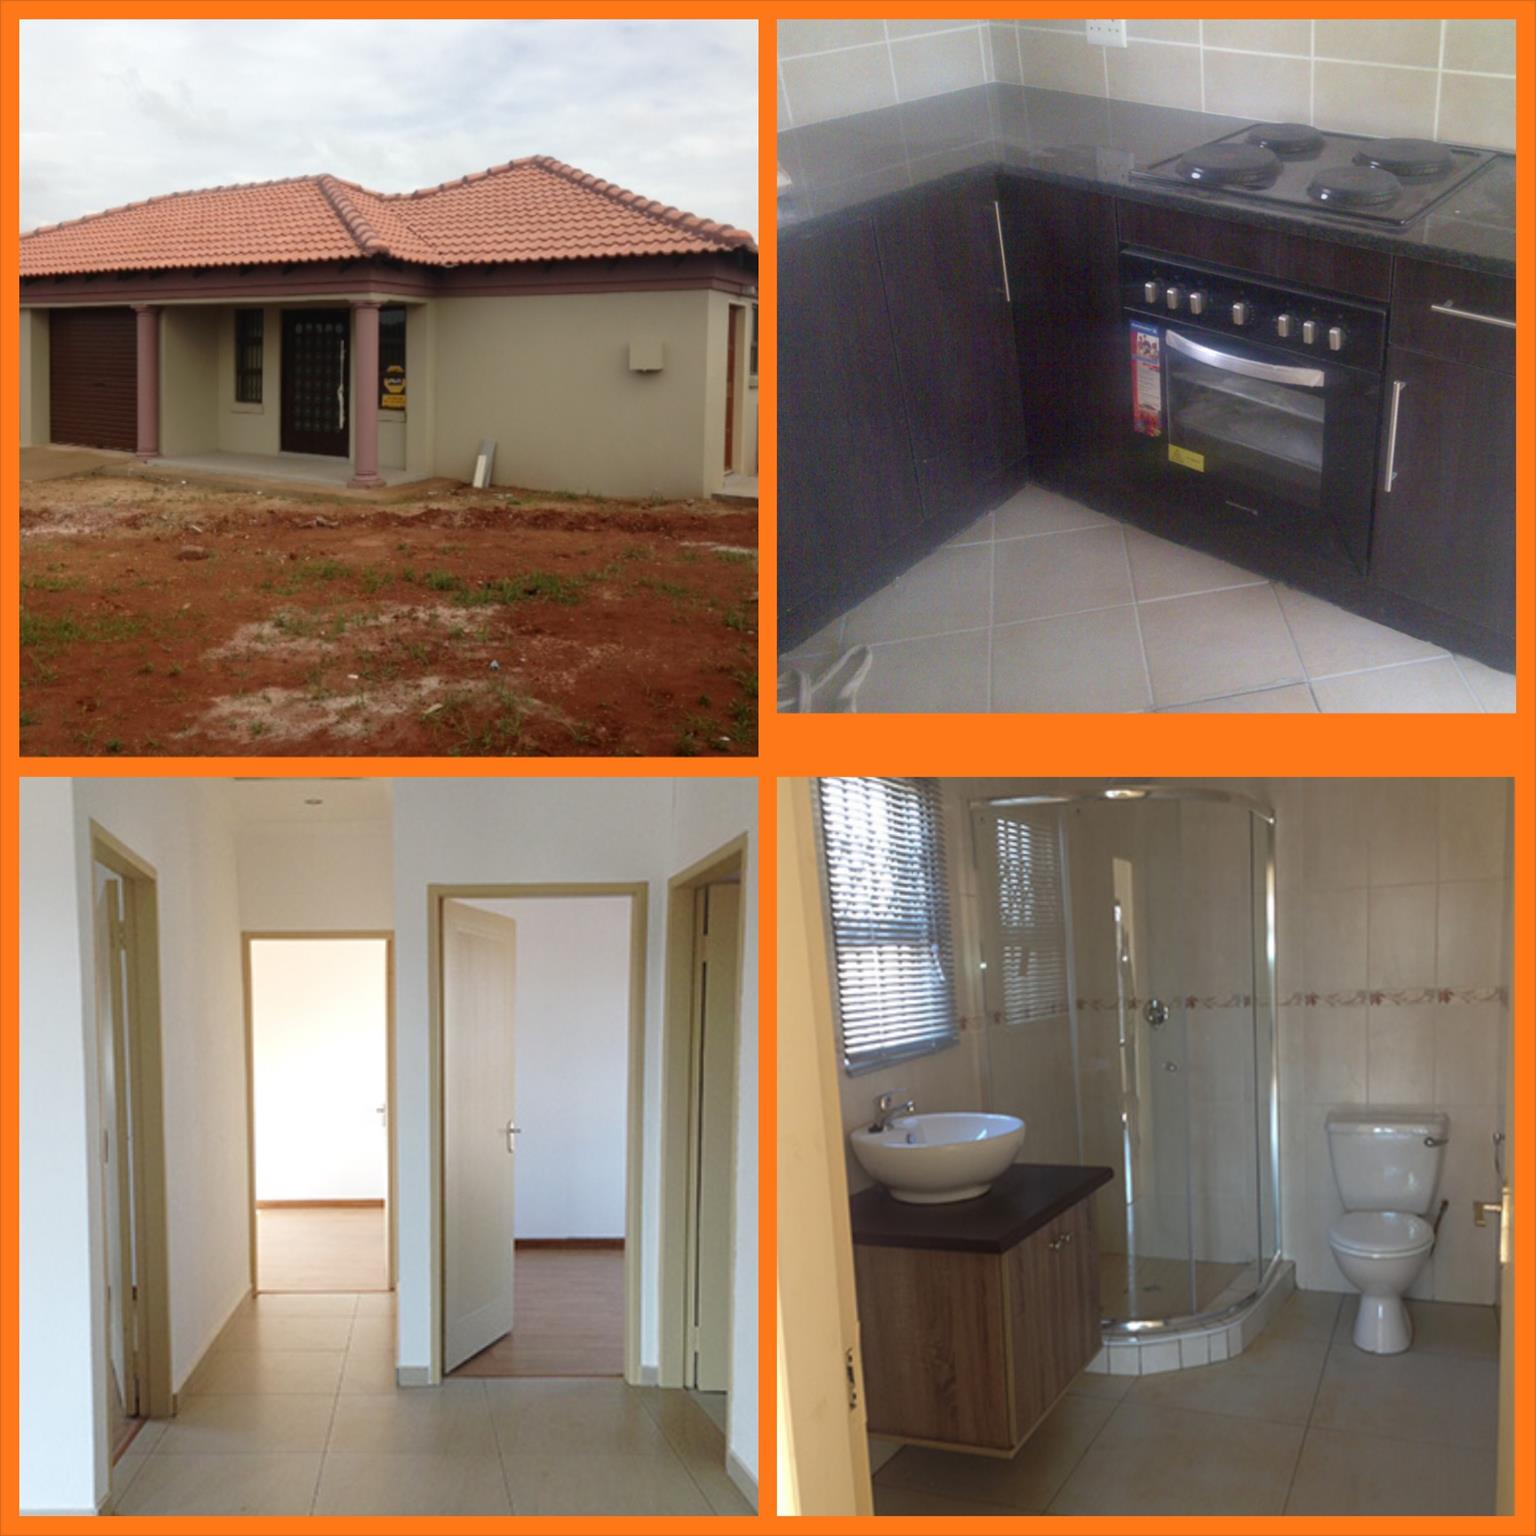 Brand new Houses for sale in vanderbijlpark C E 3/4 from R 379k  all costs included no hidden costs